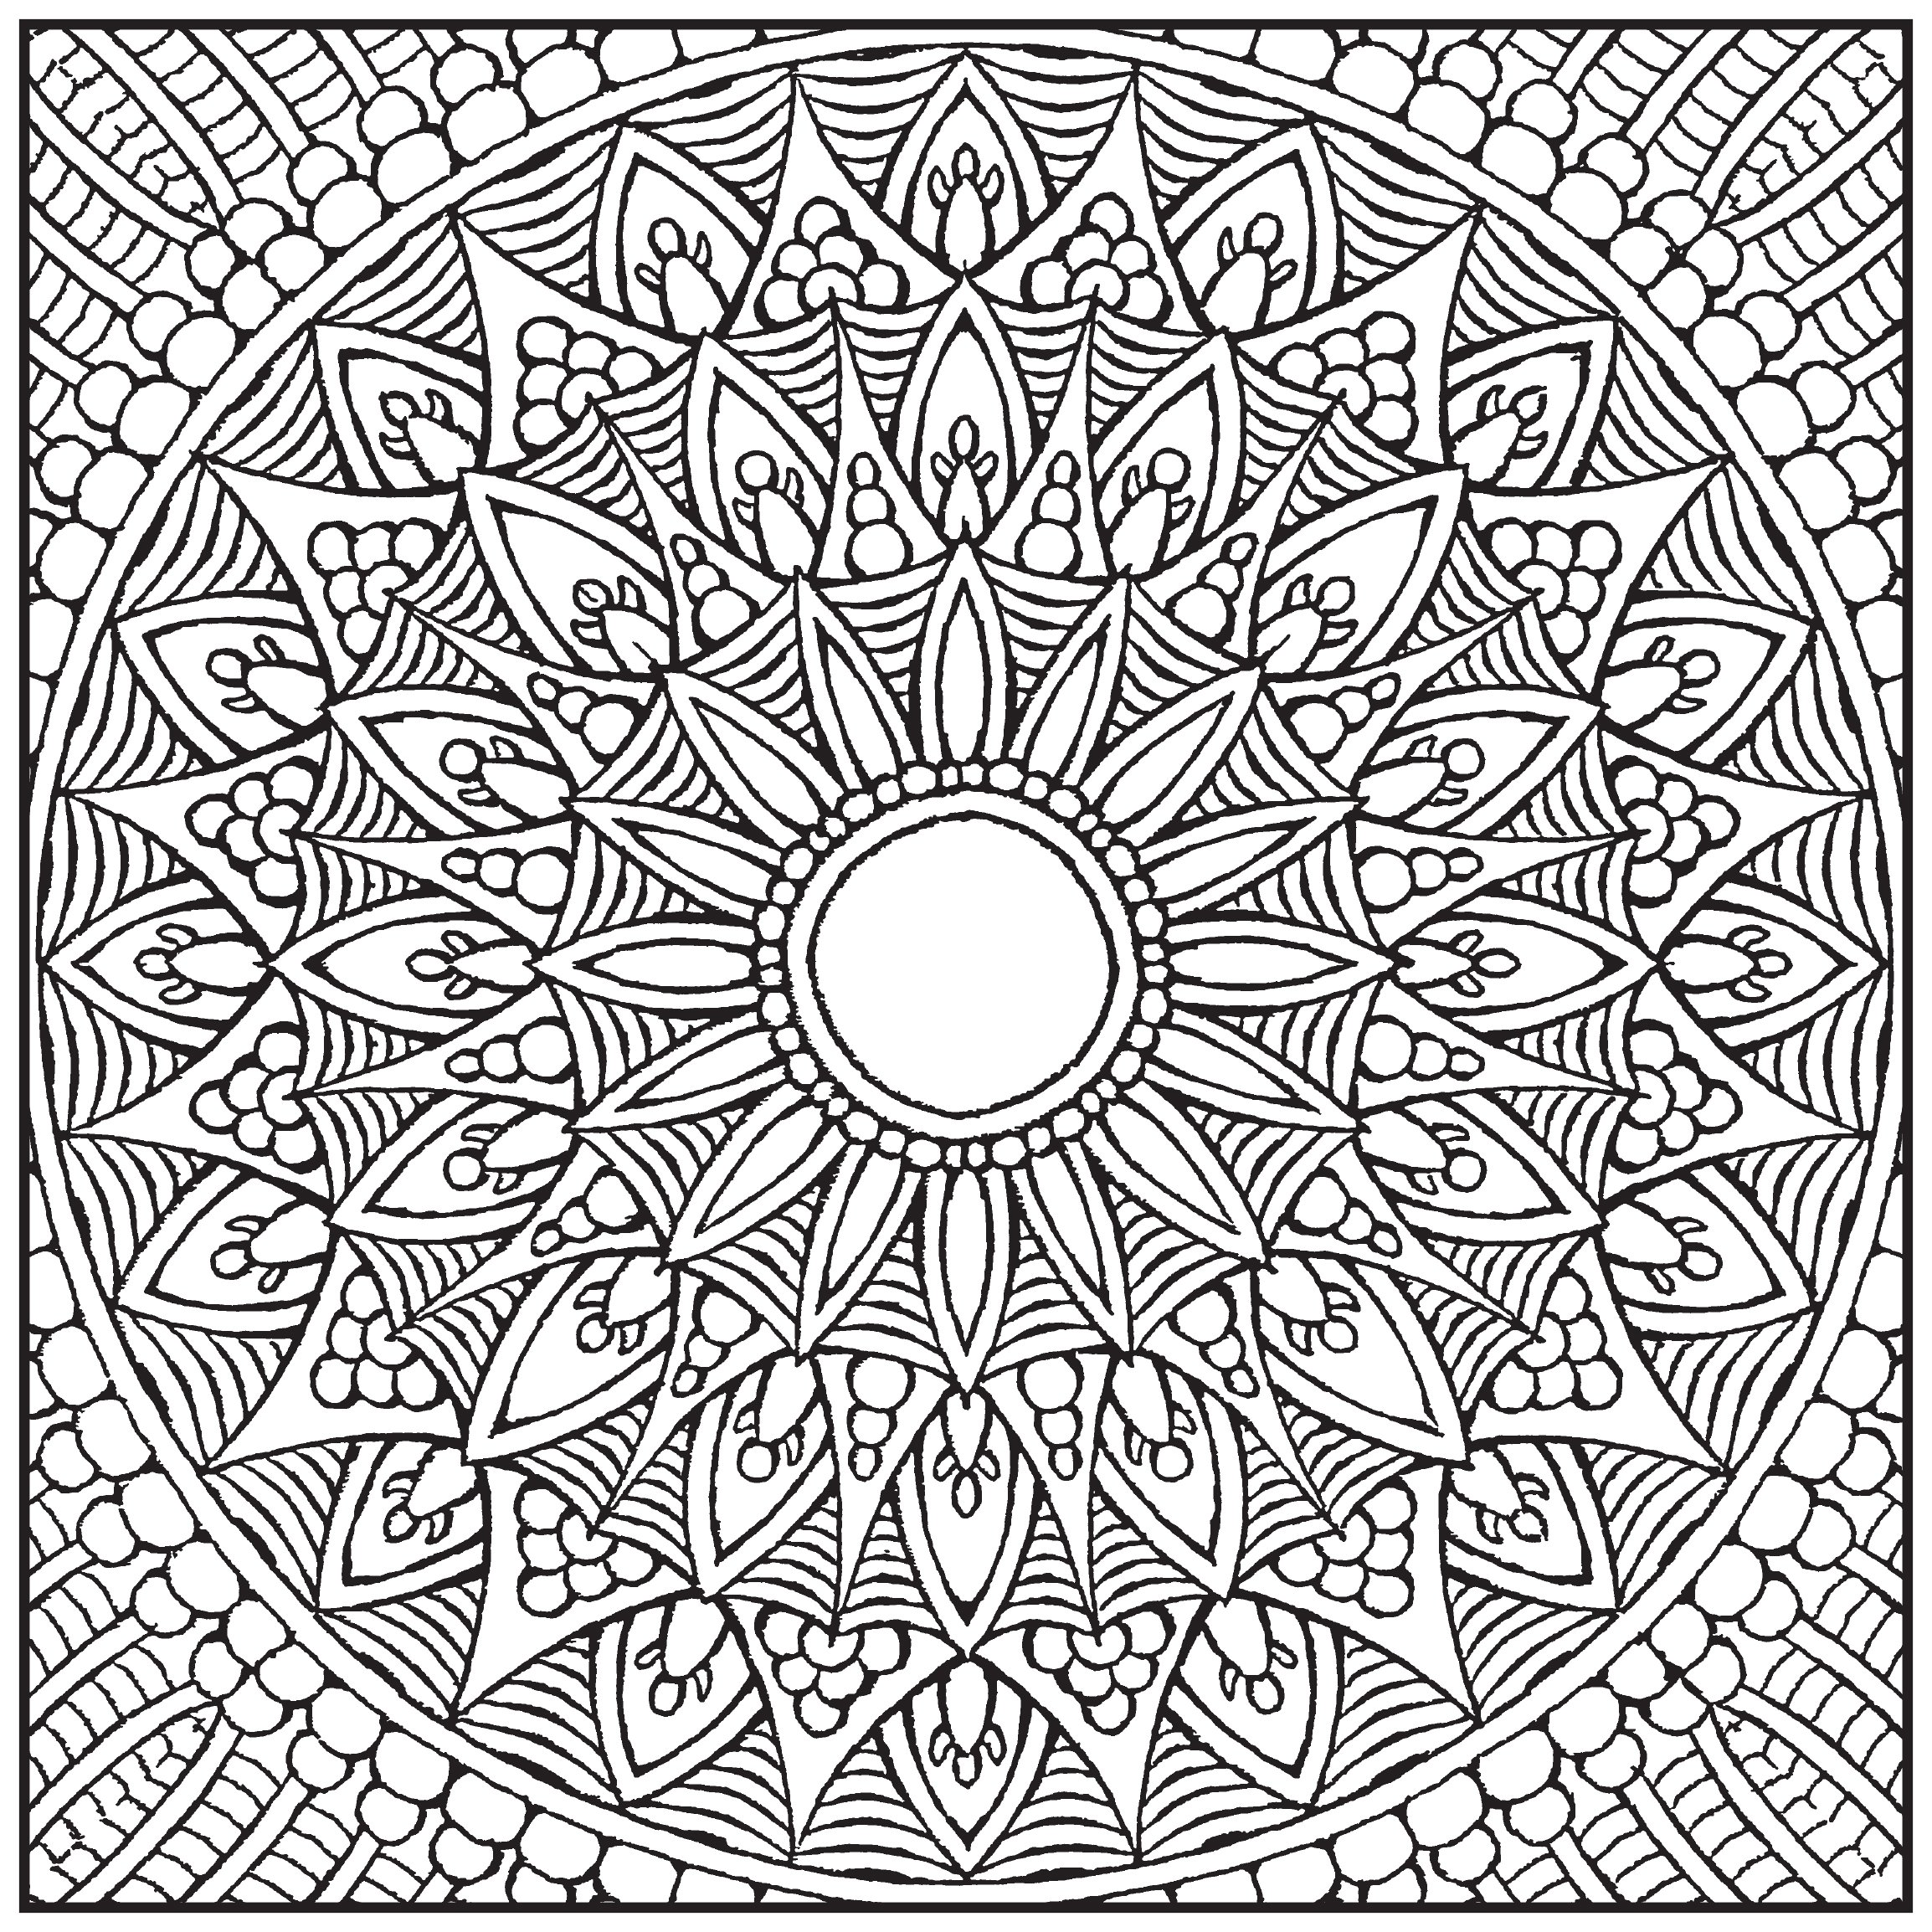 Amazon.com: Mandalas Adult Coloring Book With Bonus Relaxation Music ...